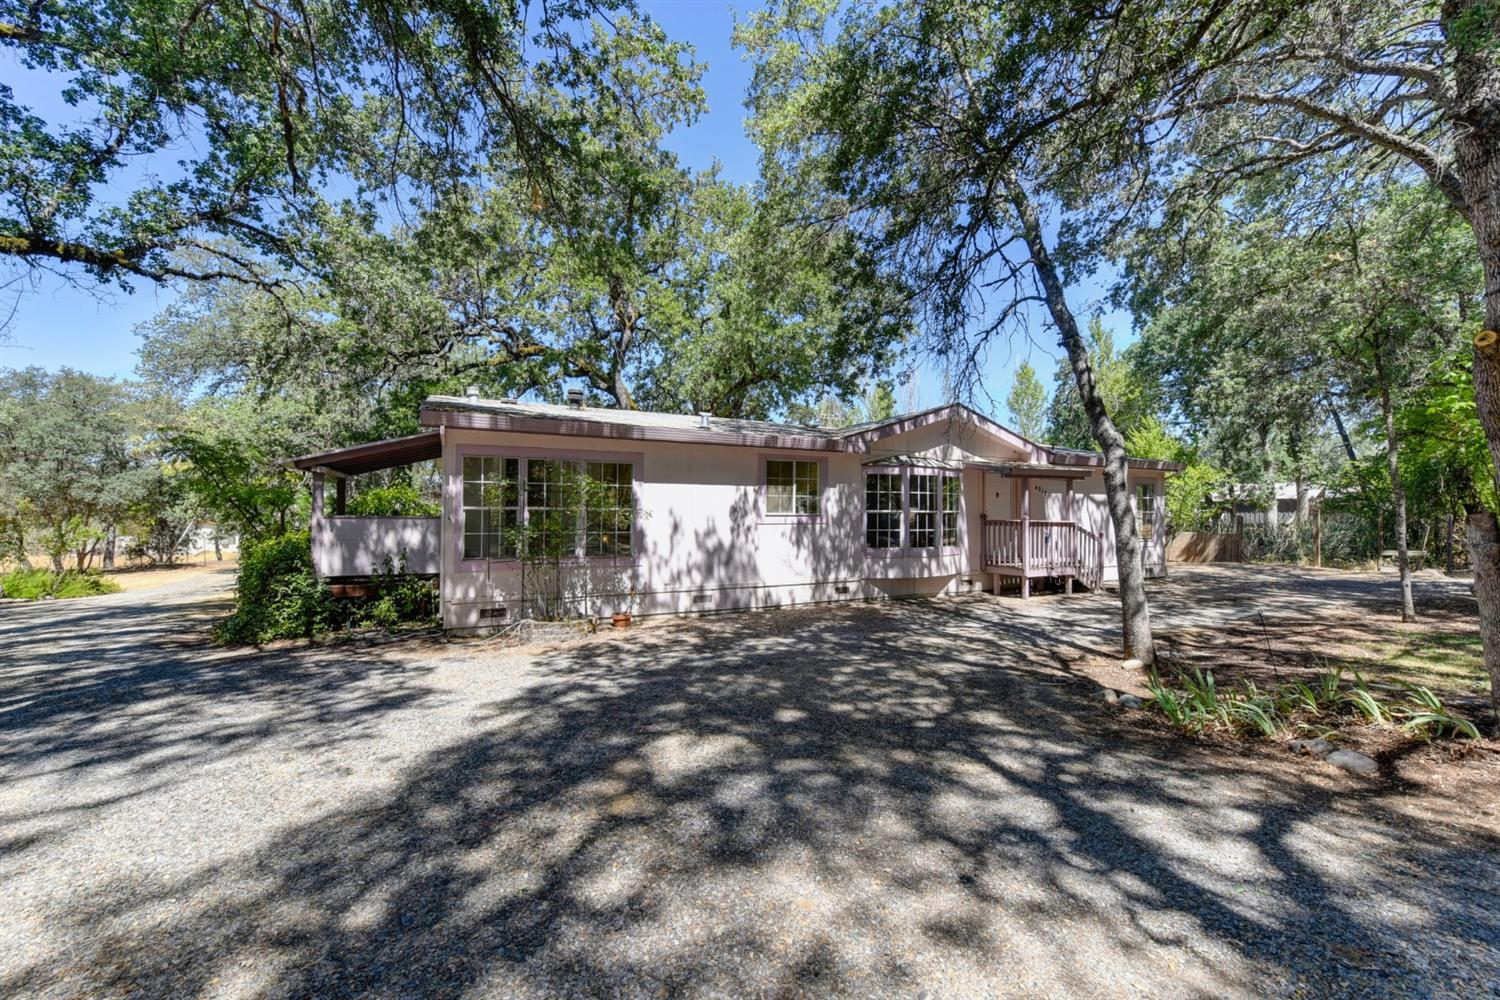 Rare Find. Single level home, with an Approximately  1500 sq. Ft. Garage/shop with upper level. Would be an easy conversion to a granny flat or ADU. Almost 2 acres of Flat land is perfect for animals or a garden. Close to the Town of El Dorado. Cosmetic fixer, do your own work and gain some sweat equity. Several out building offer lots of extra storage. Two ways to enter, make it easy if you have a RV or large vehicles. Hurry, this won't last.